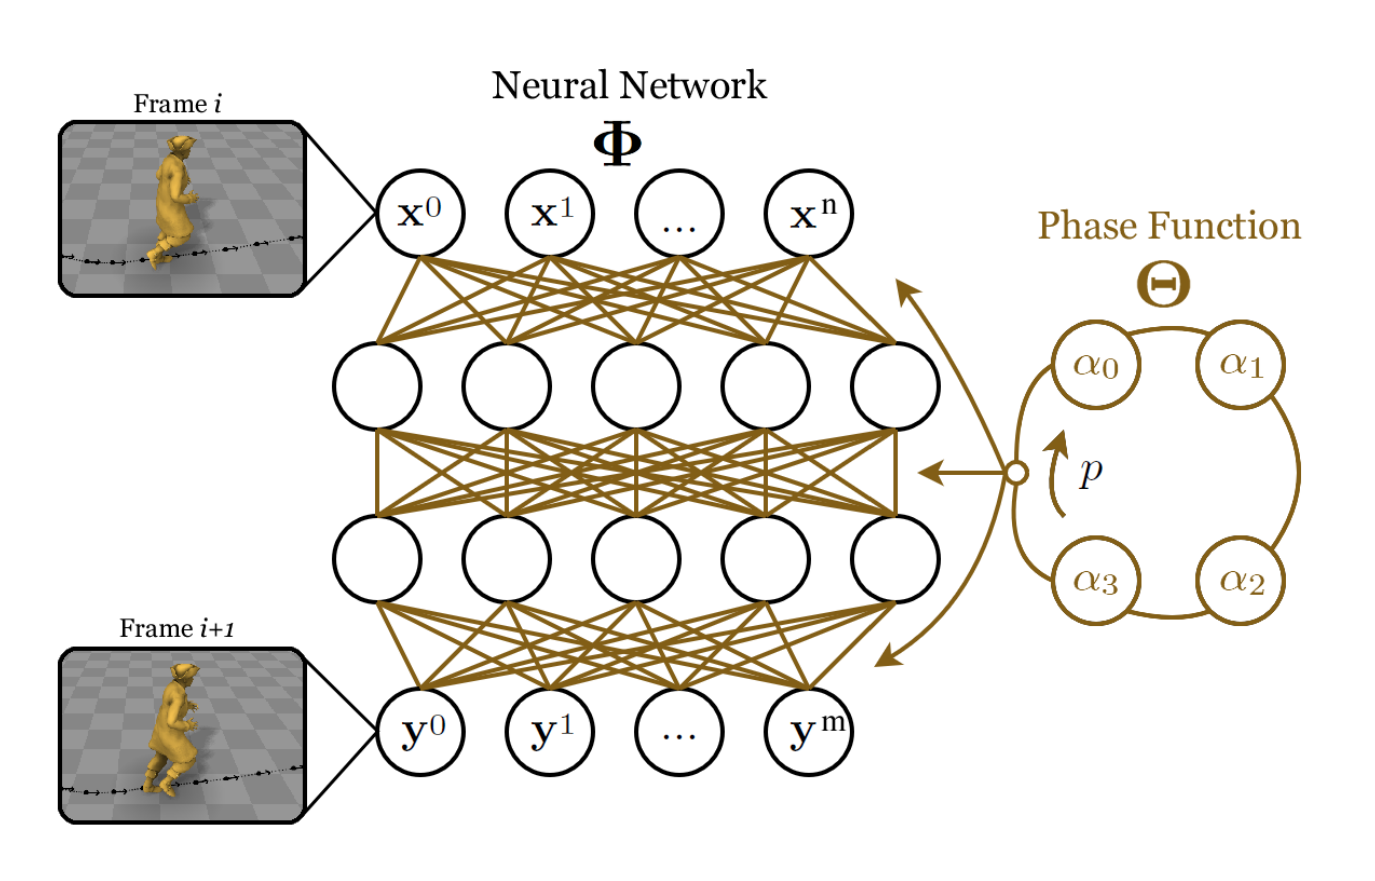 A Highlevel Model Of The Neuralwork And How It Generates New Frames Of